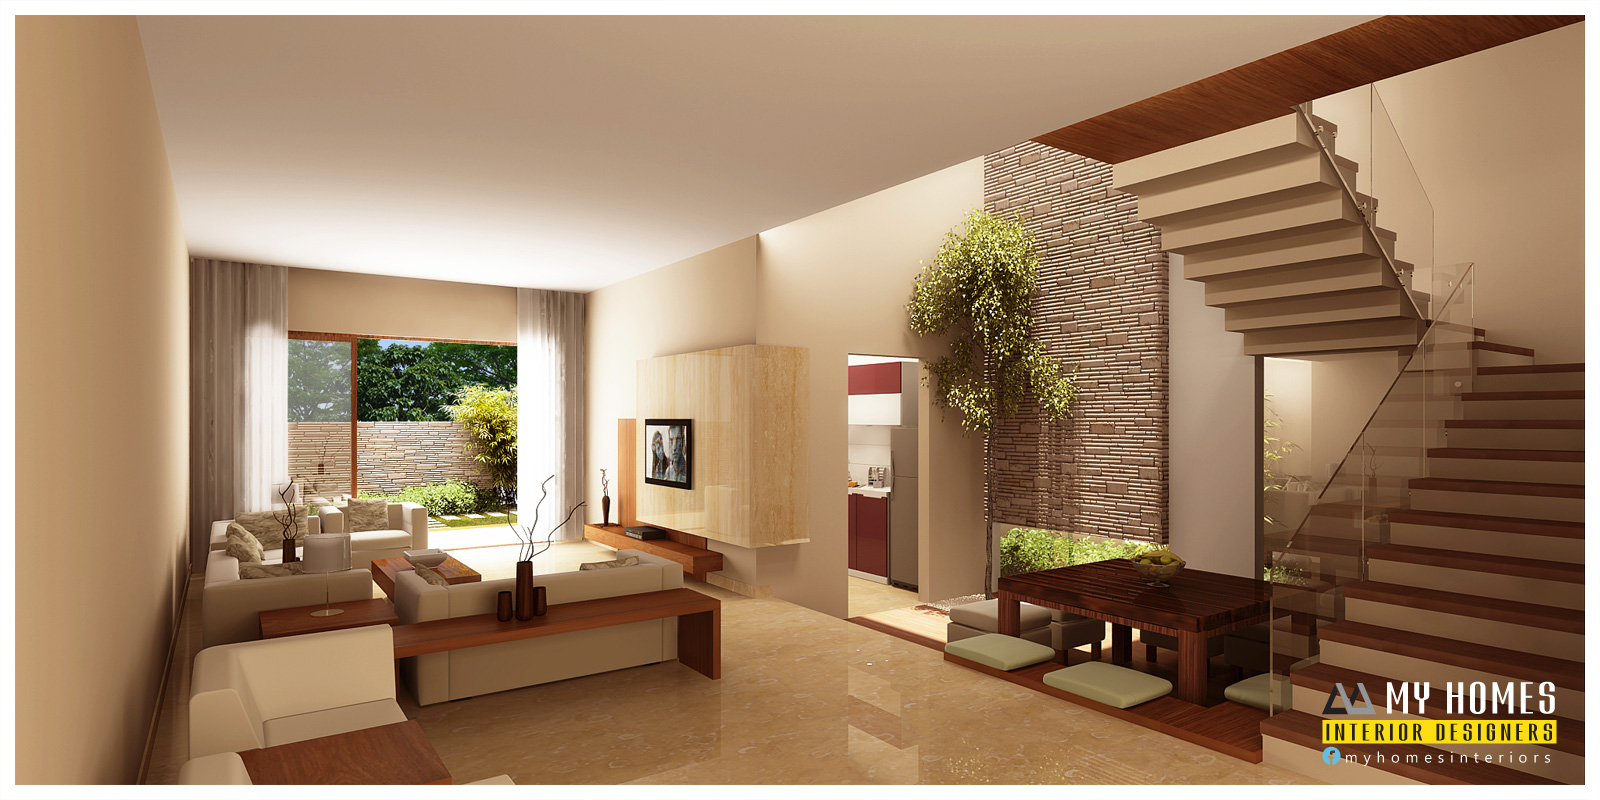 kerala interior design ideas from designing company thrissur new home designs latest modern homes interior settings